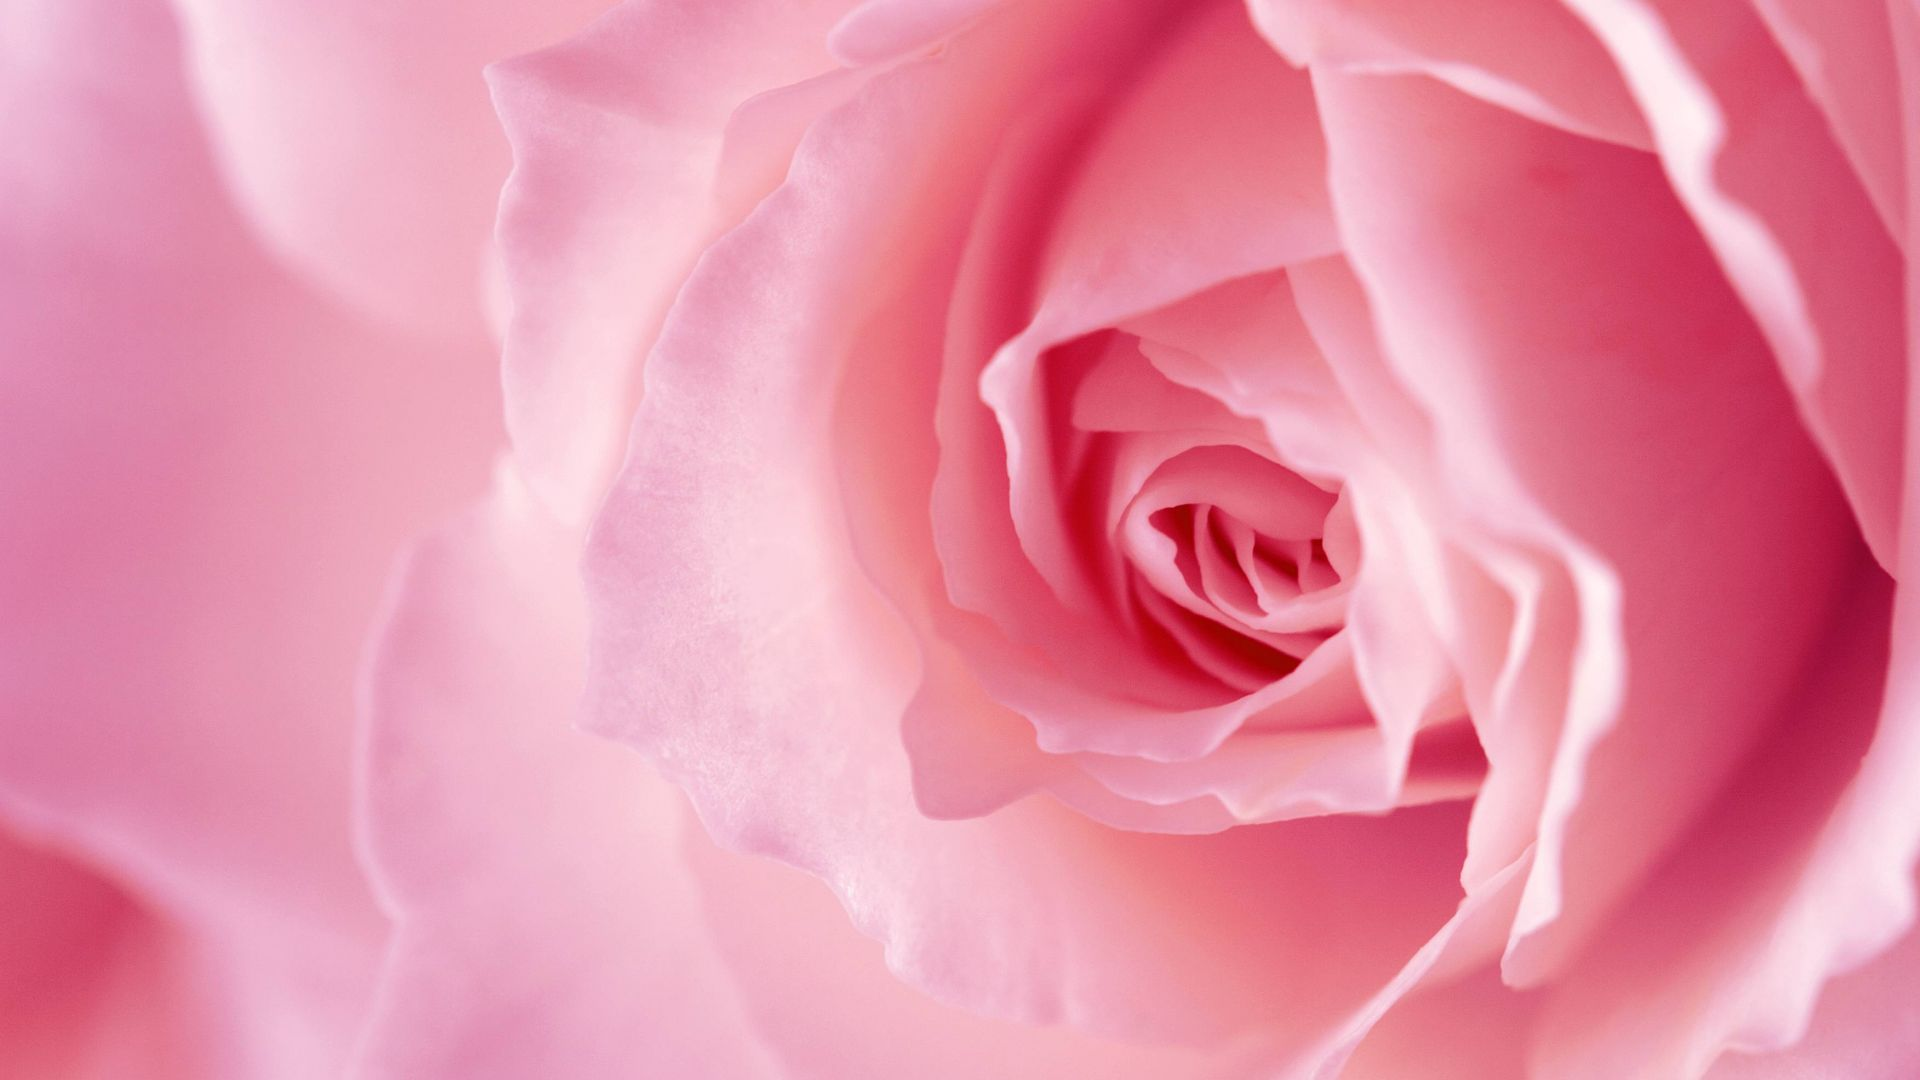 Stock Images Flower Rose Pink 4k Stock Images 16036